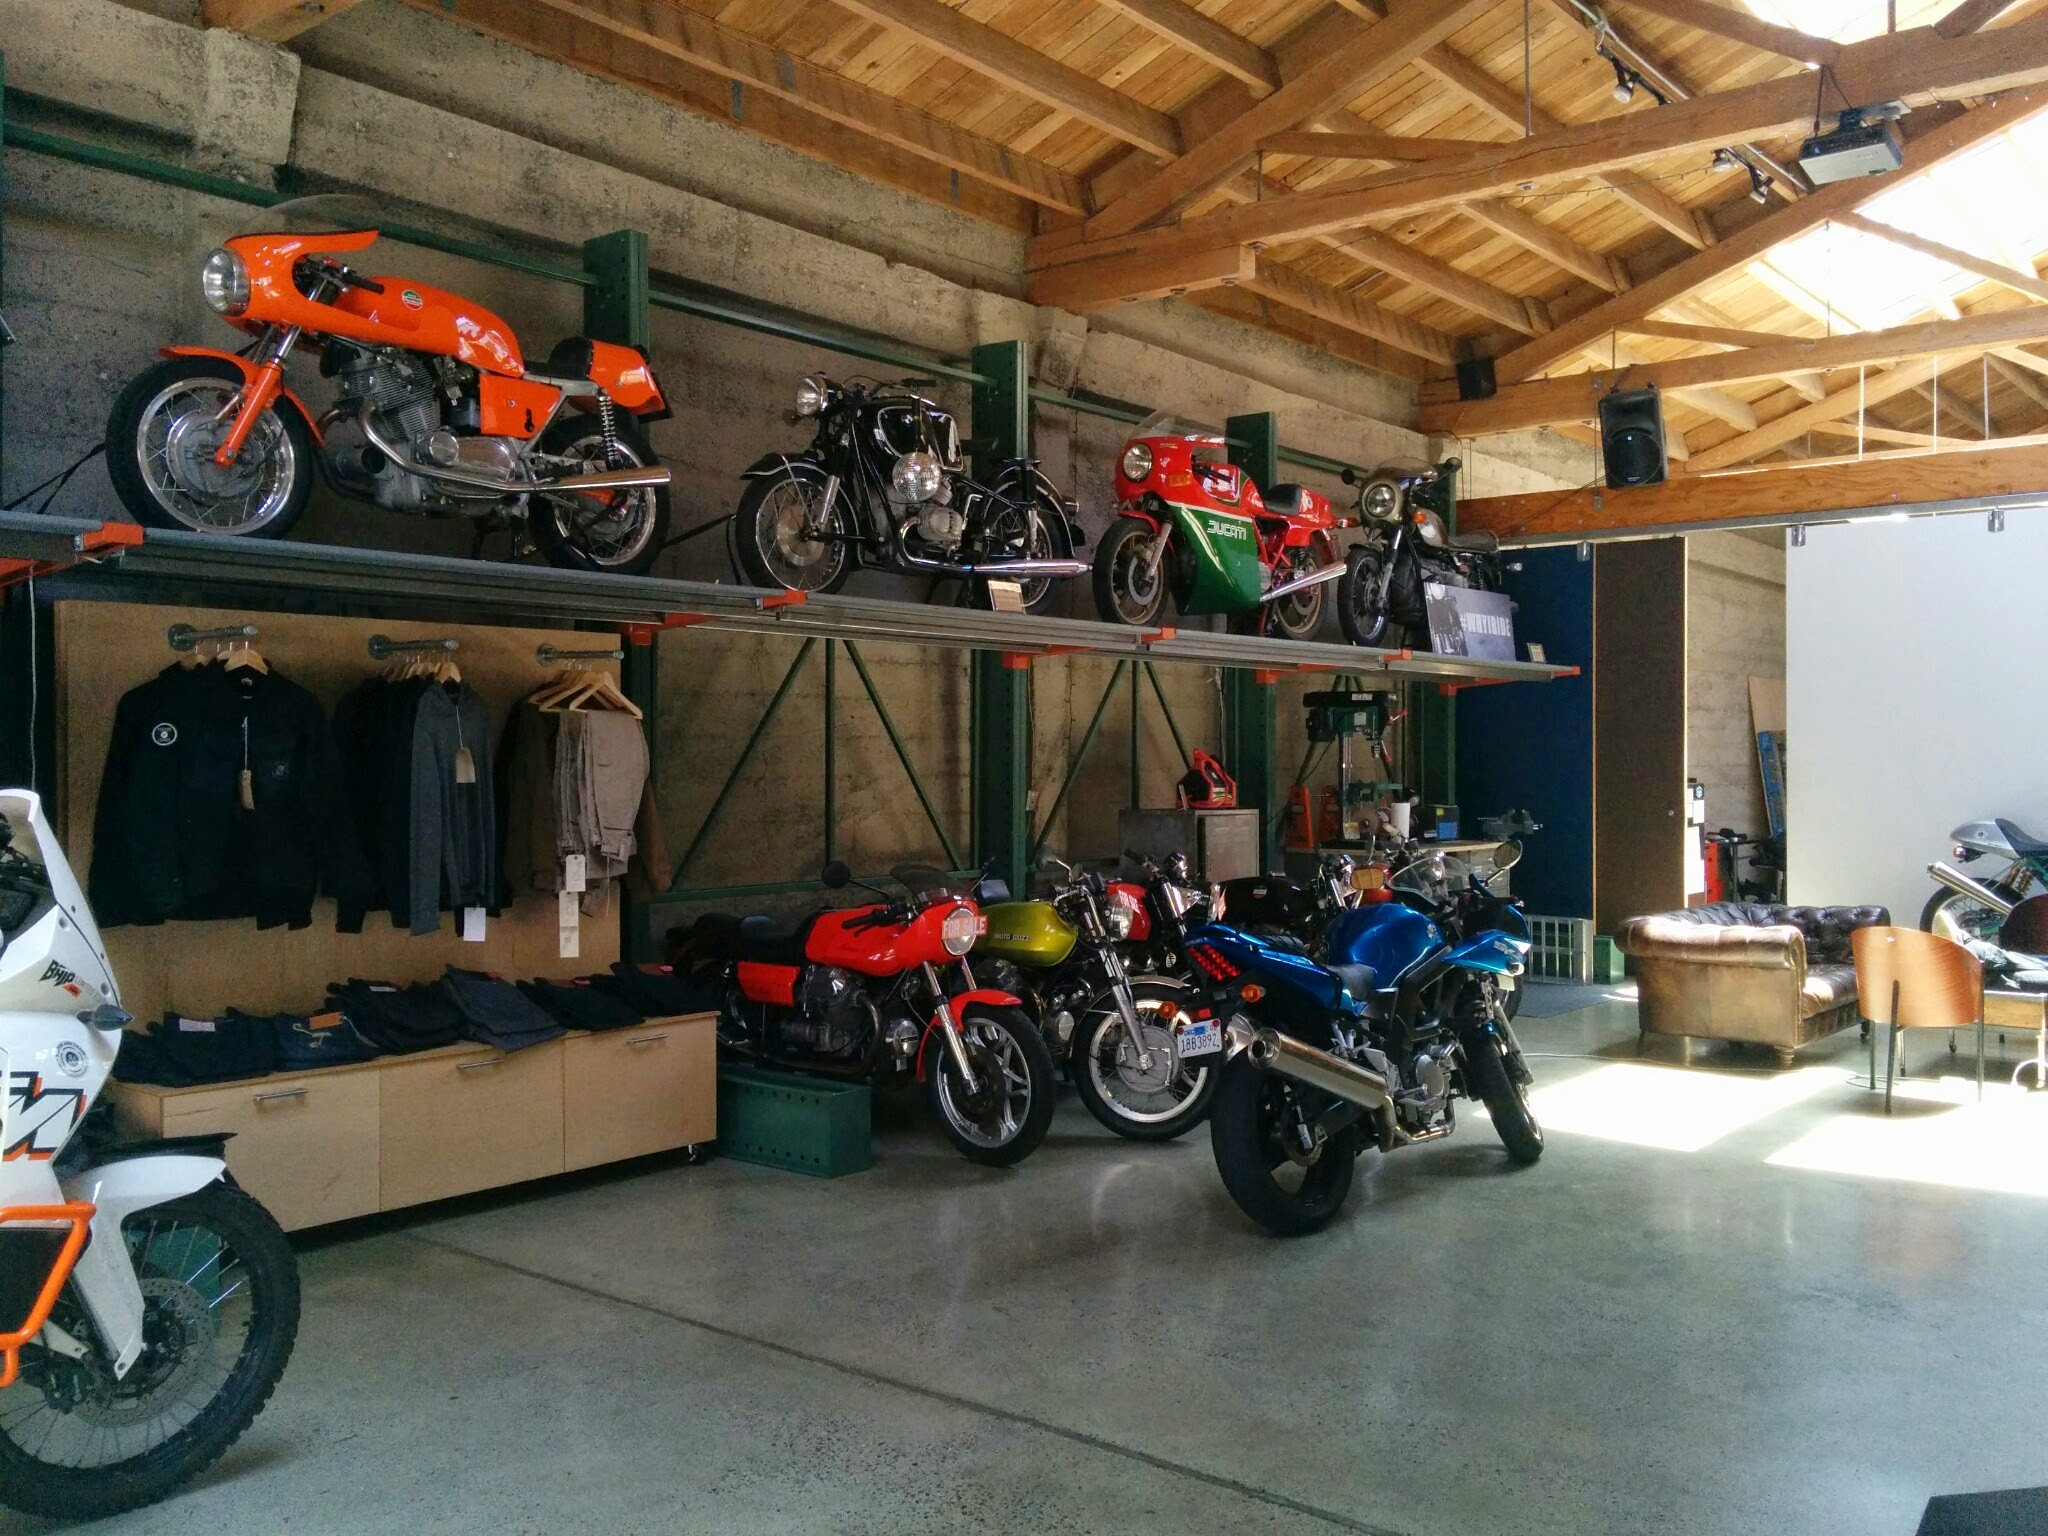 Piston and Chain Motorcycle Club Interior